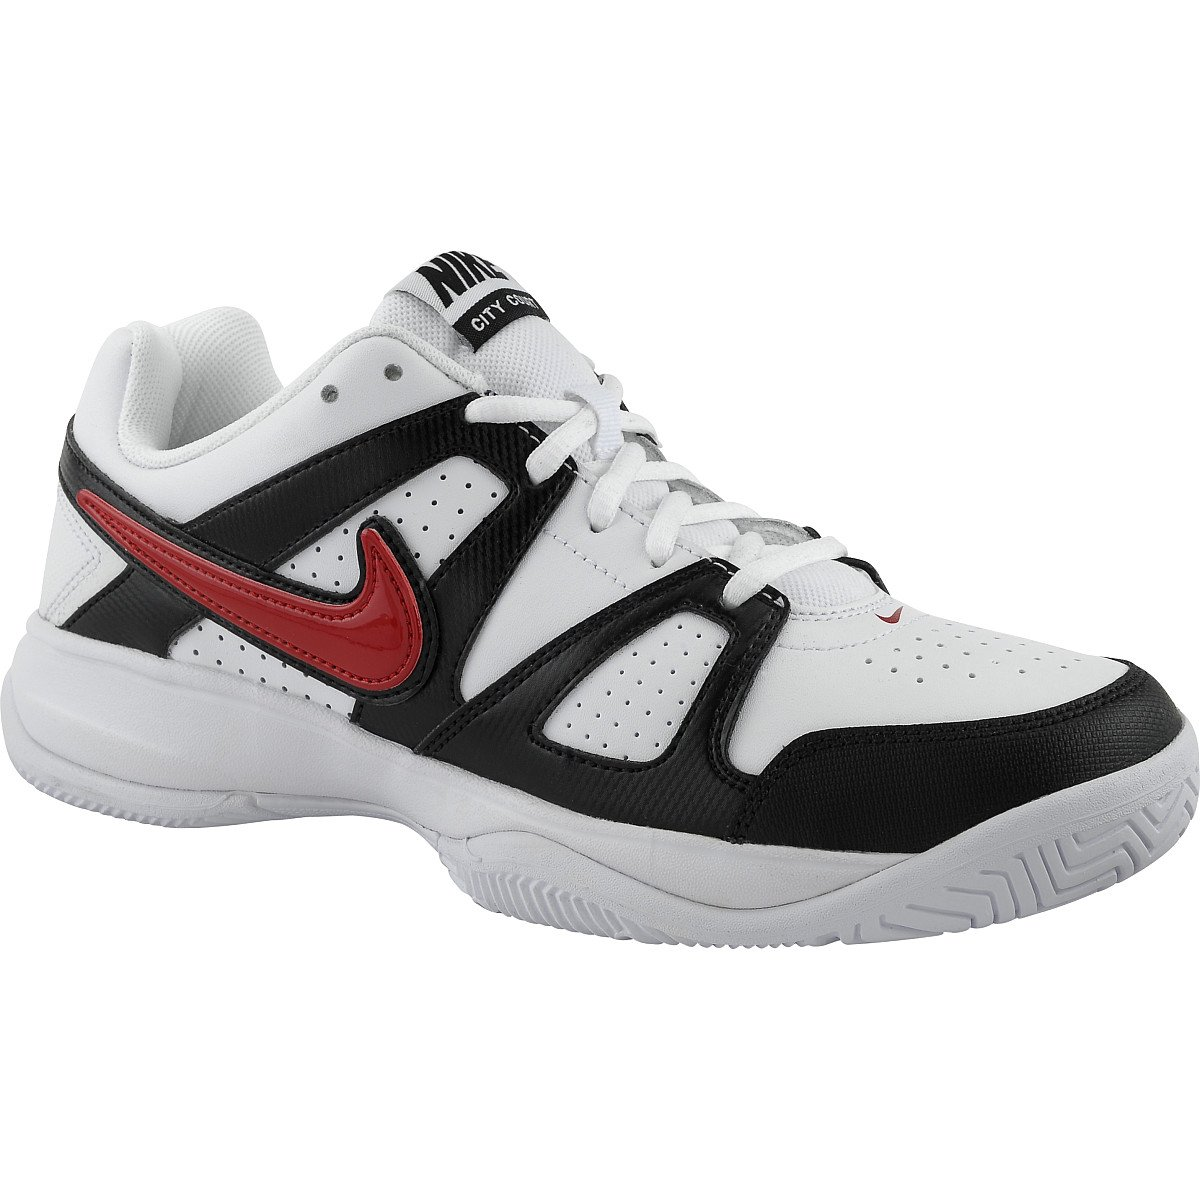 4fa3f77133cf6 Buy Nike City Court VII Men Court Shoes Online at Low Prices in India -  Amazon.in